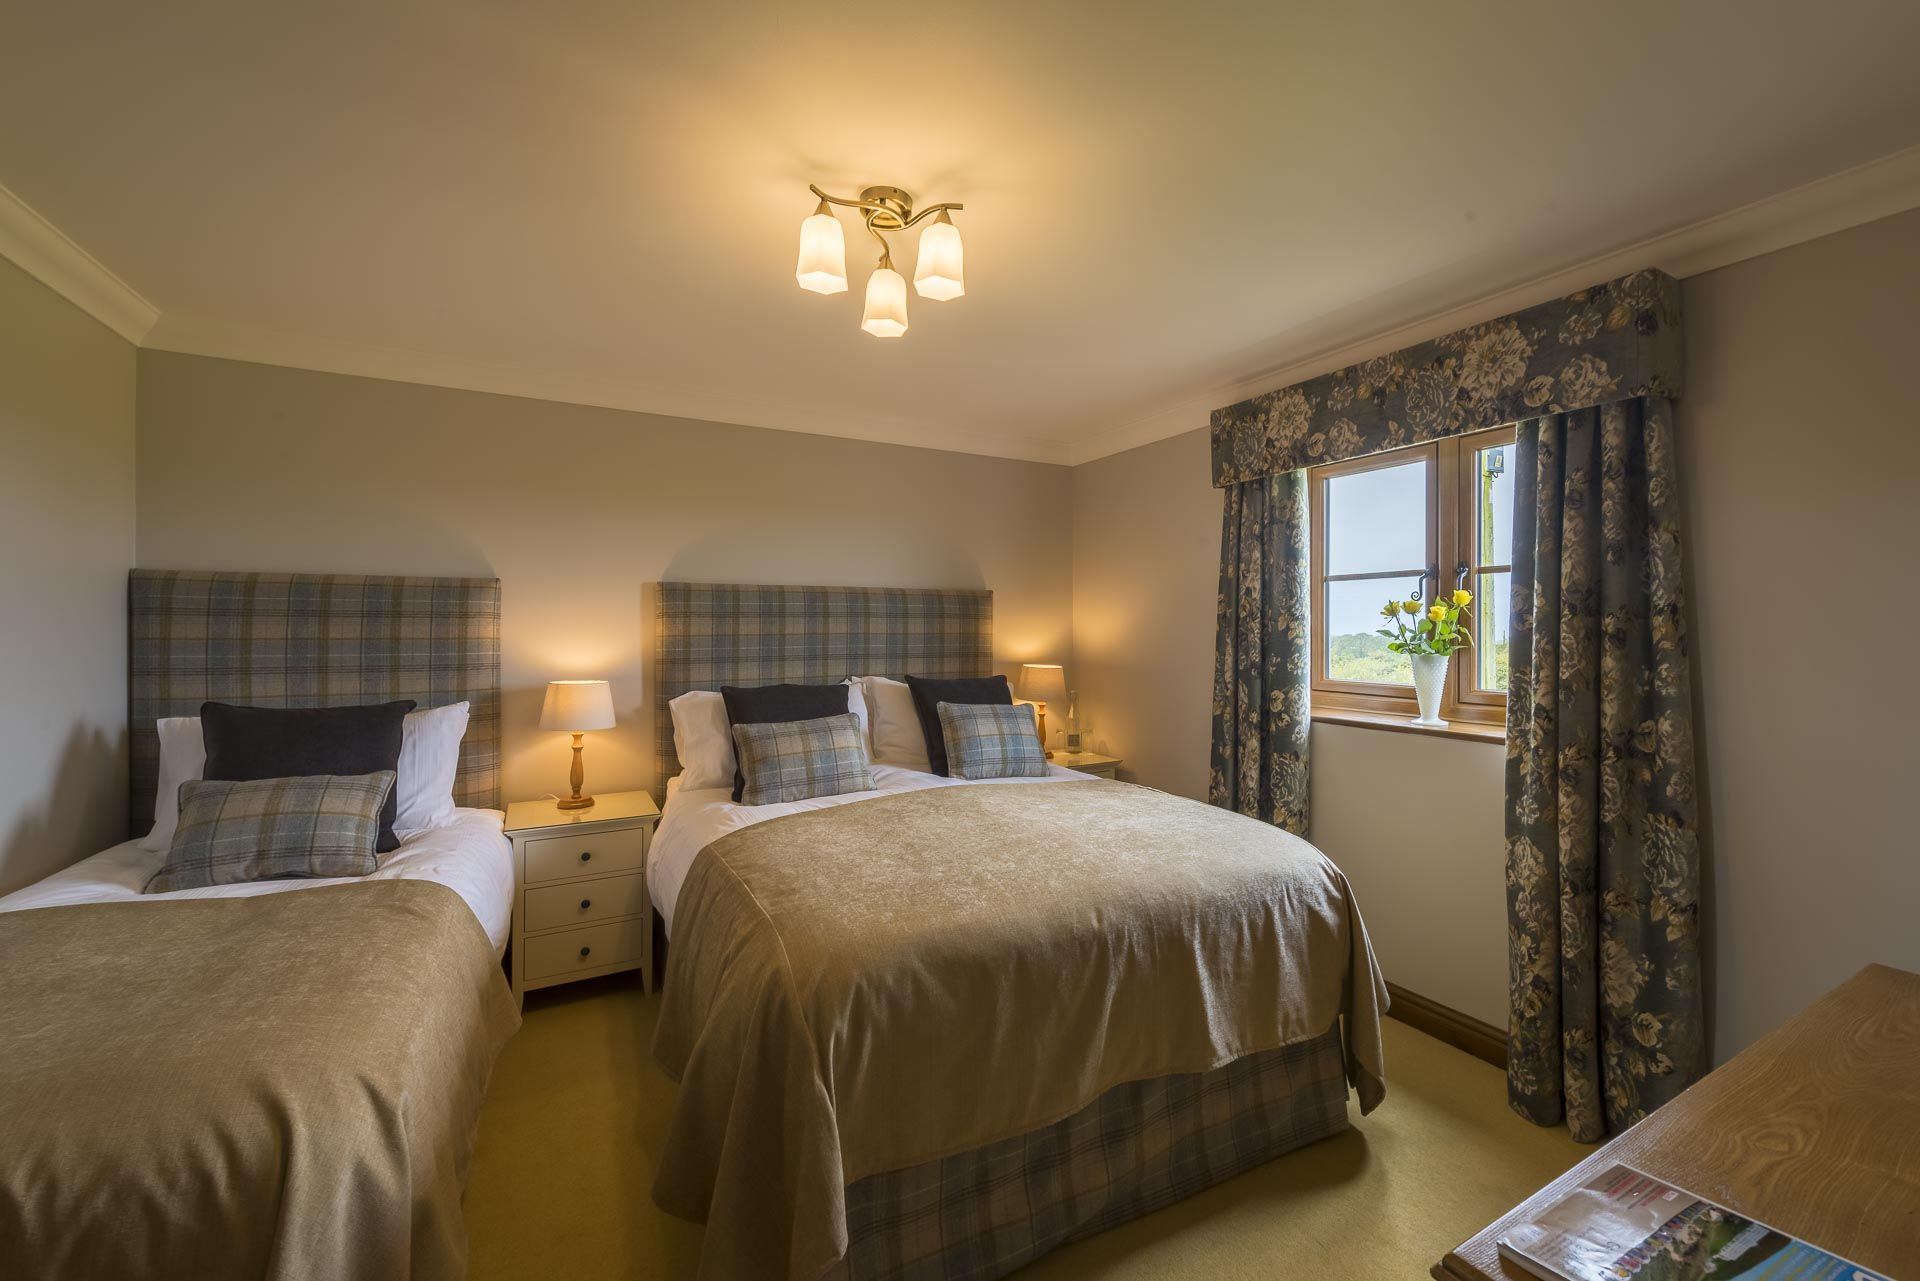 Twin room at Copps Castle Bed and Breakfast, Hartland, North Devon